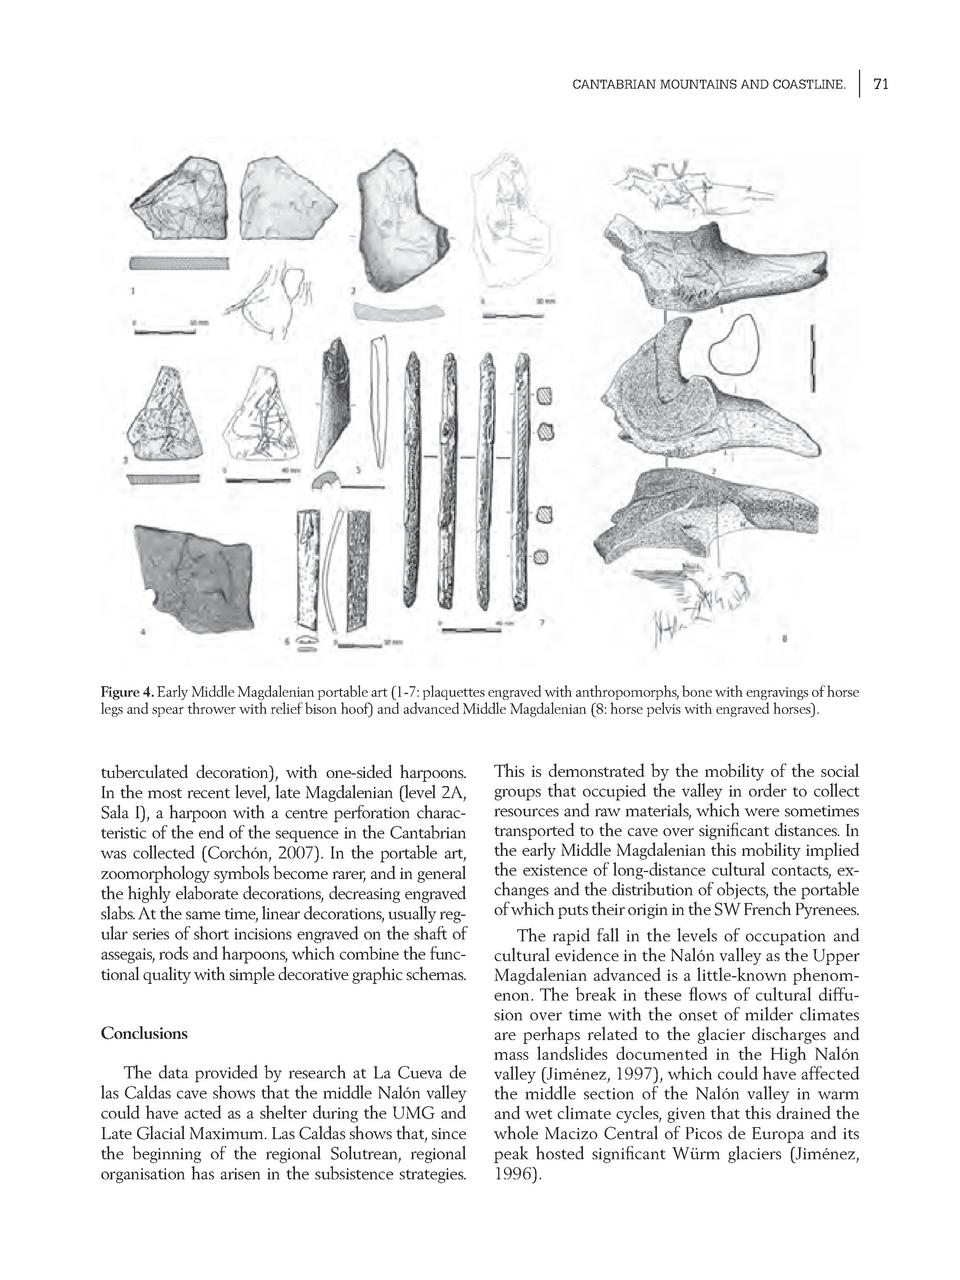 CANTABRIAN MOUNTAINS AND COASTLINE.  Figure 4. Early Middle Magdalenian portable art  1-7  plaquettes engraved with anthro...